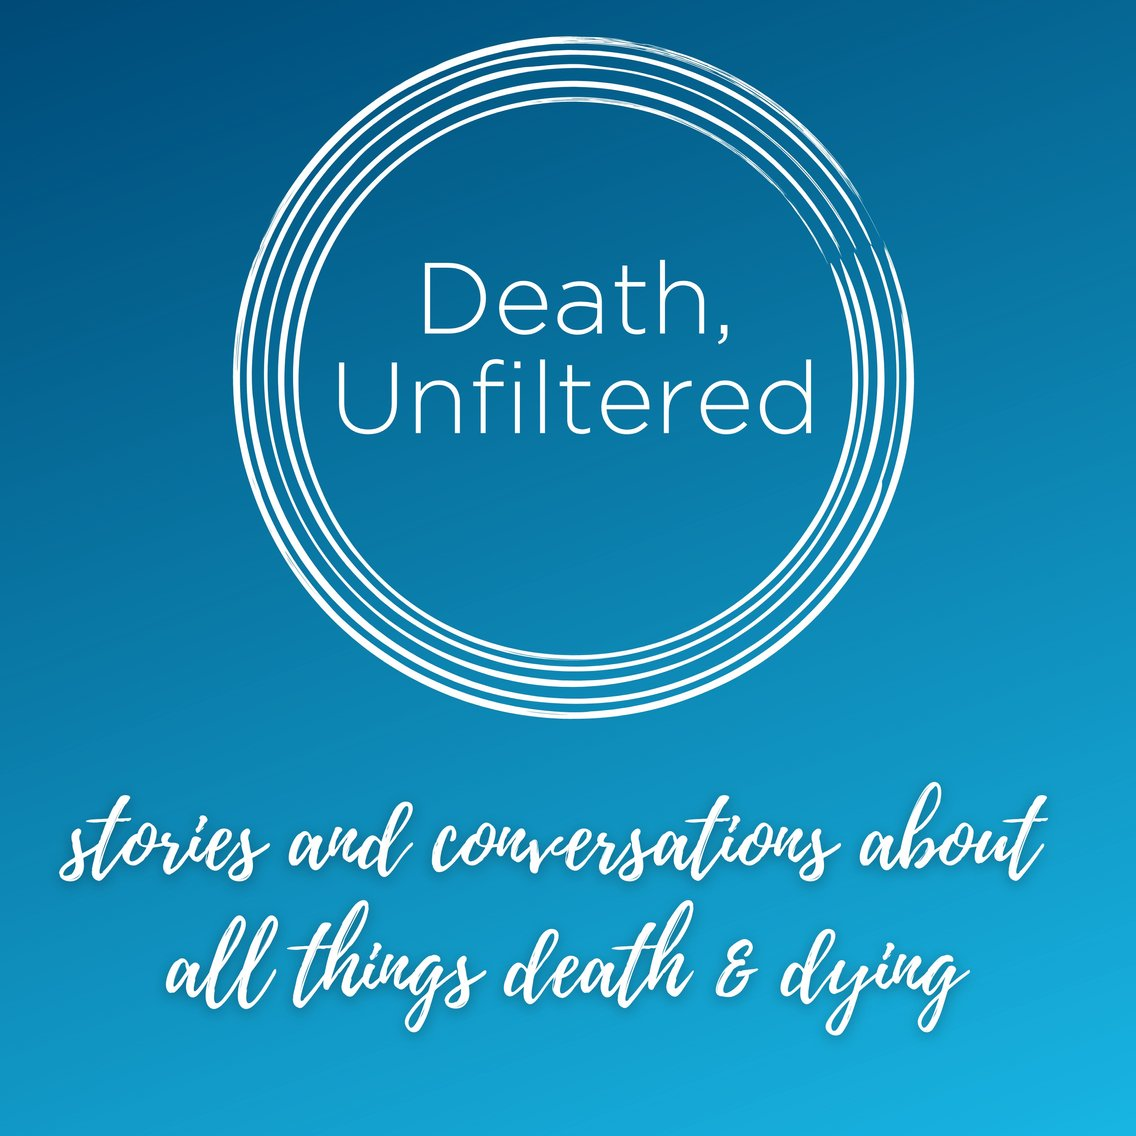 Death, Unfiltered - Cover Image